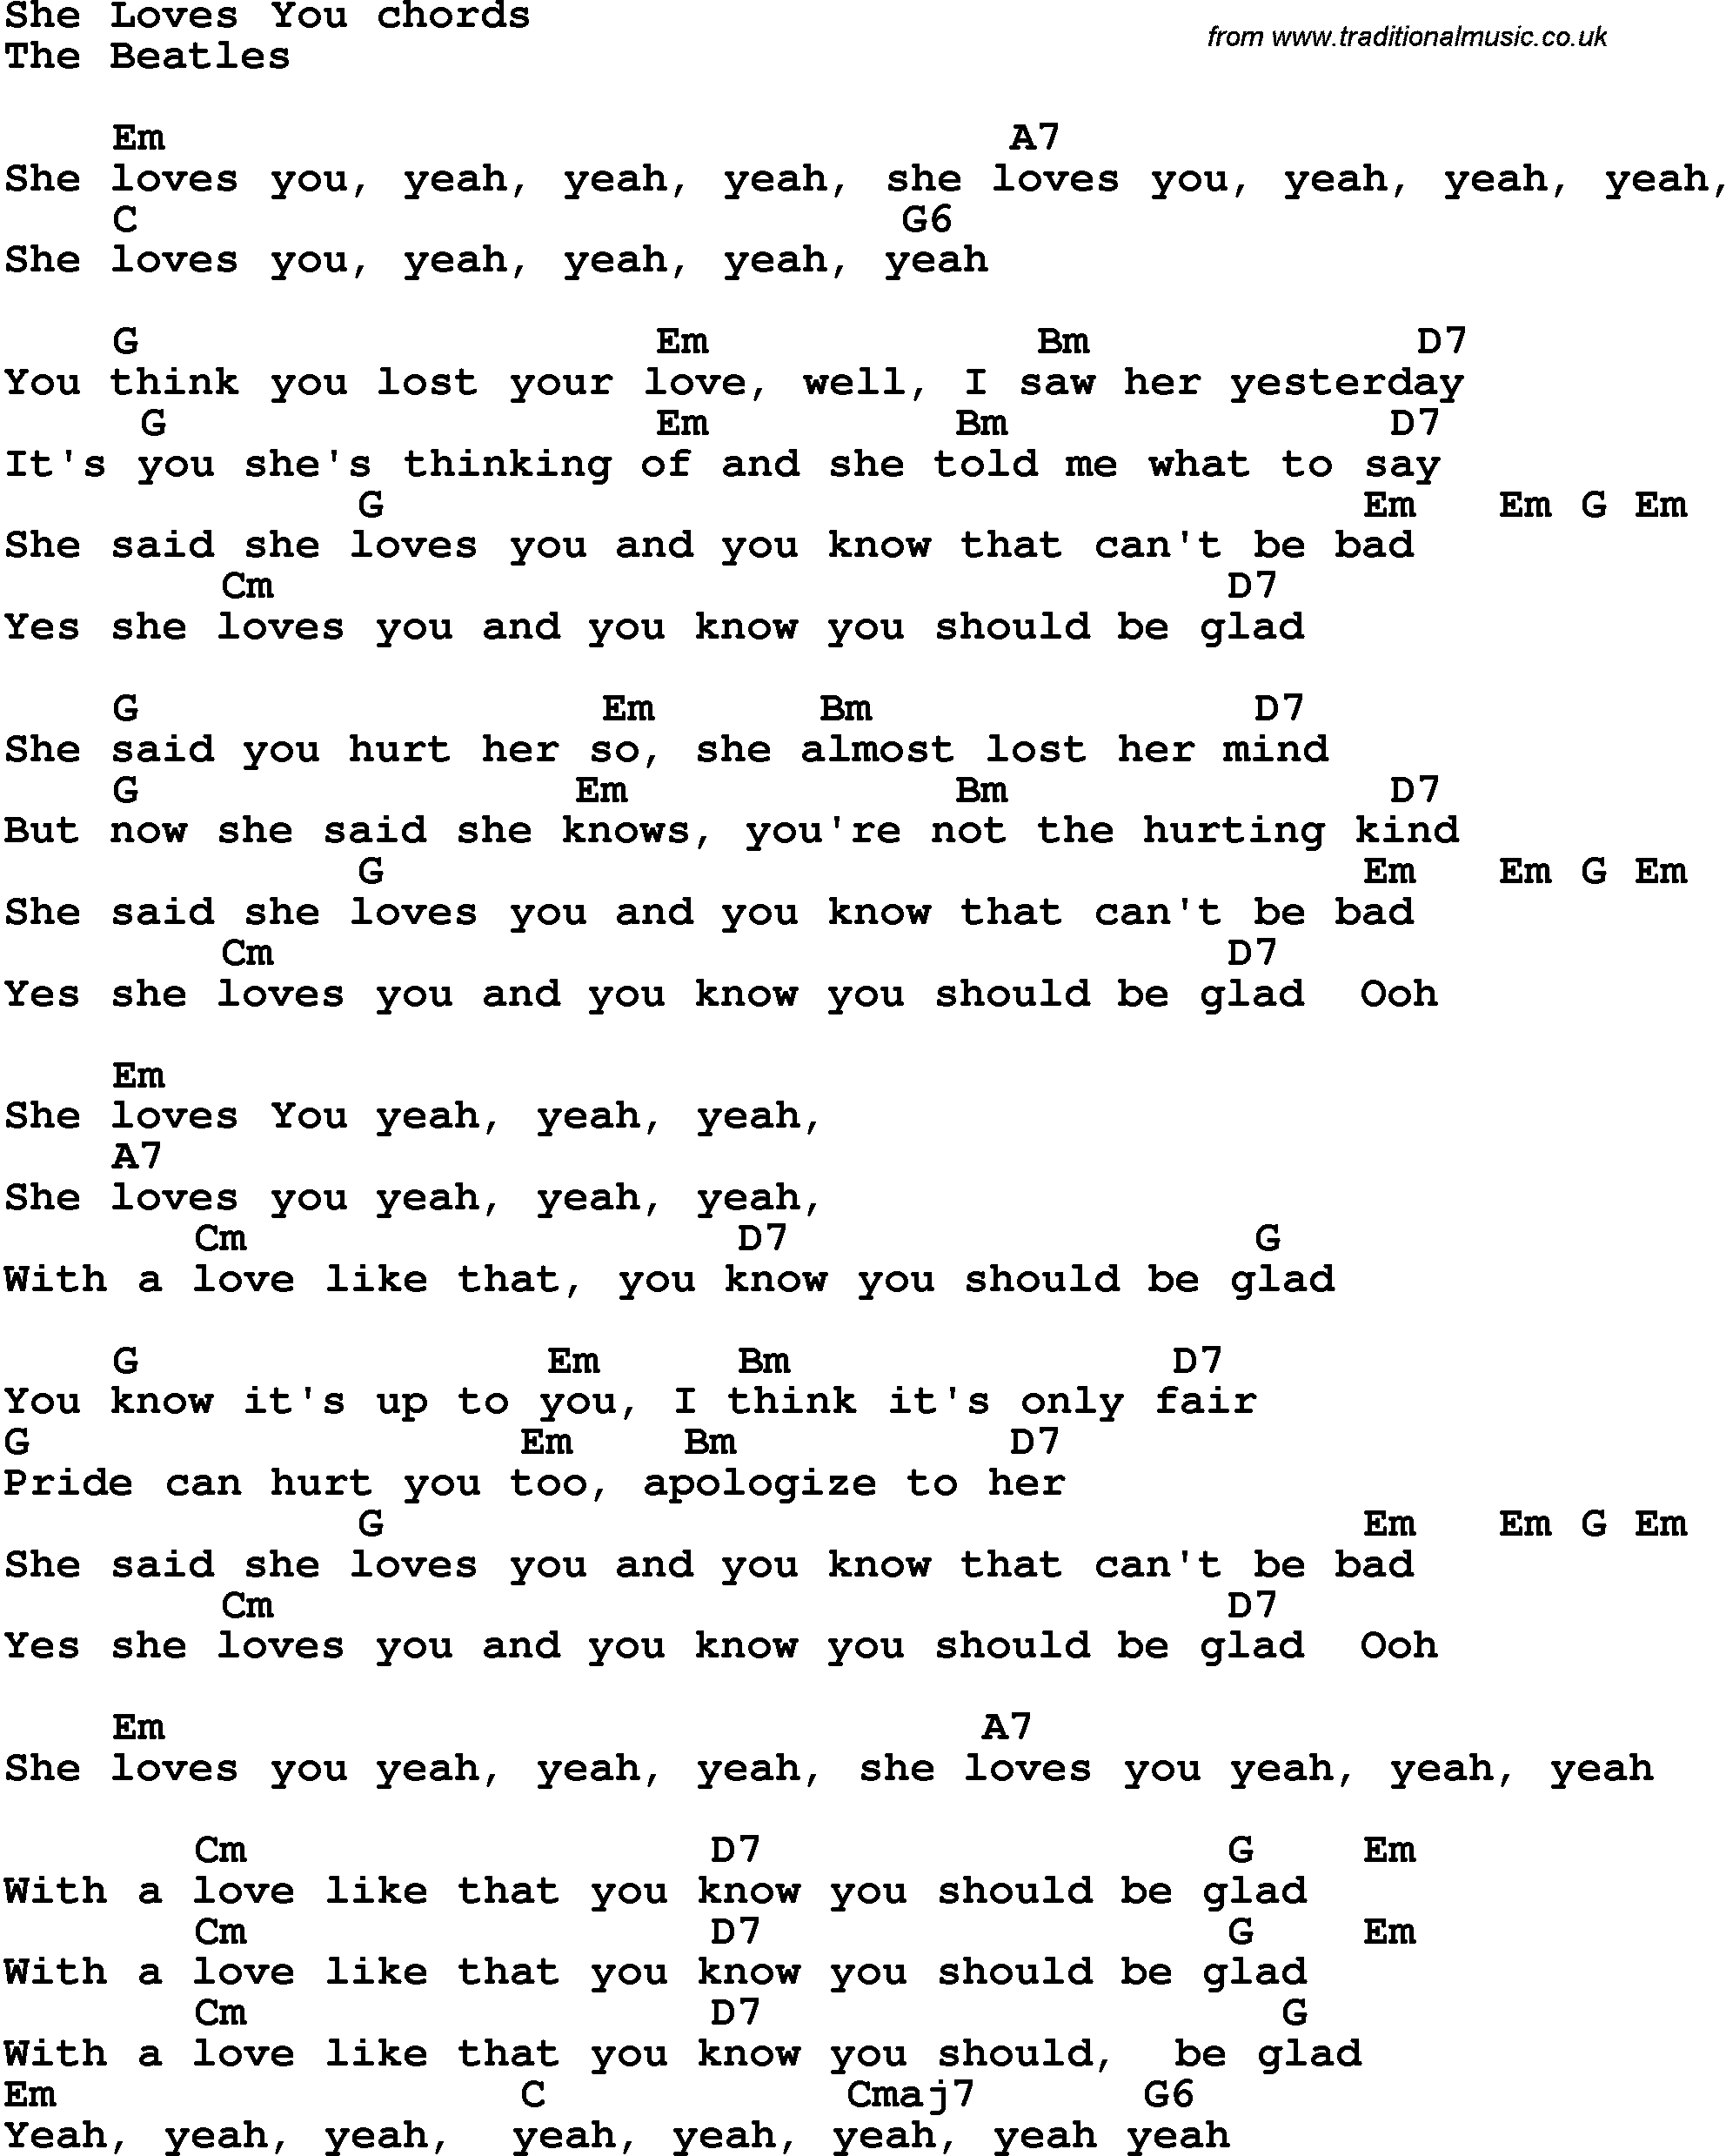 Song Lyrics With Guitar Chords For She Loves You The Beatles